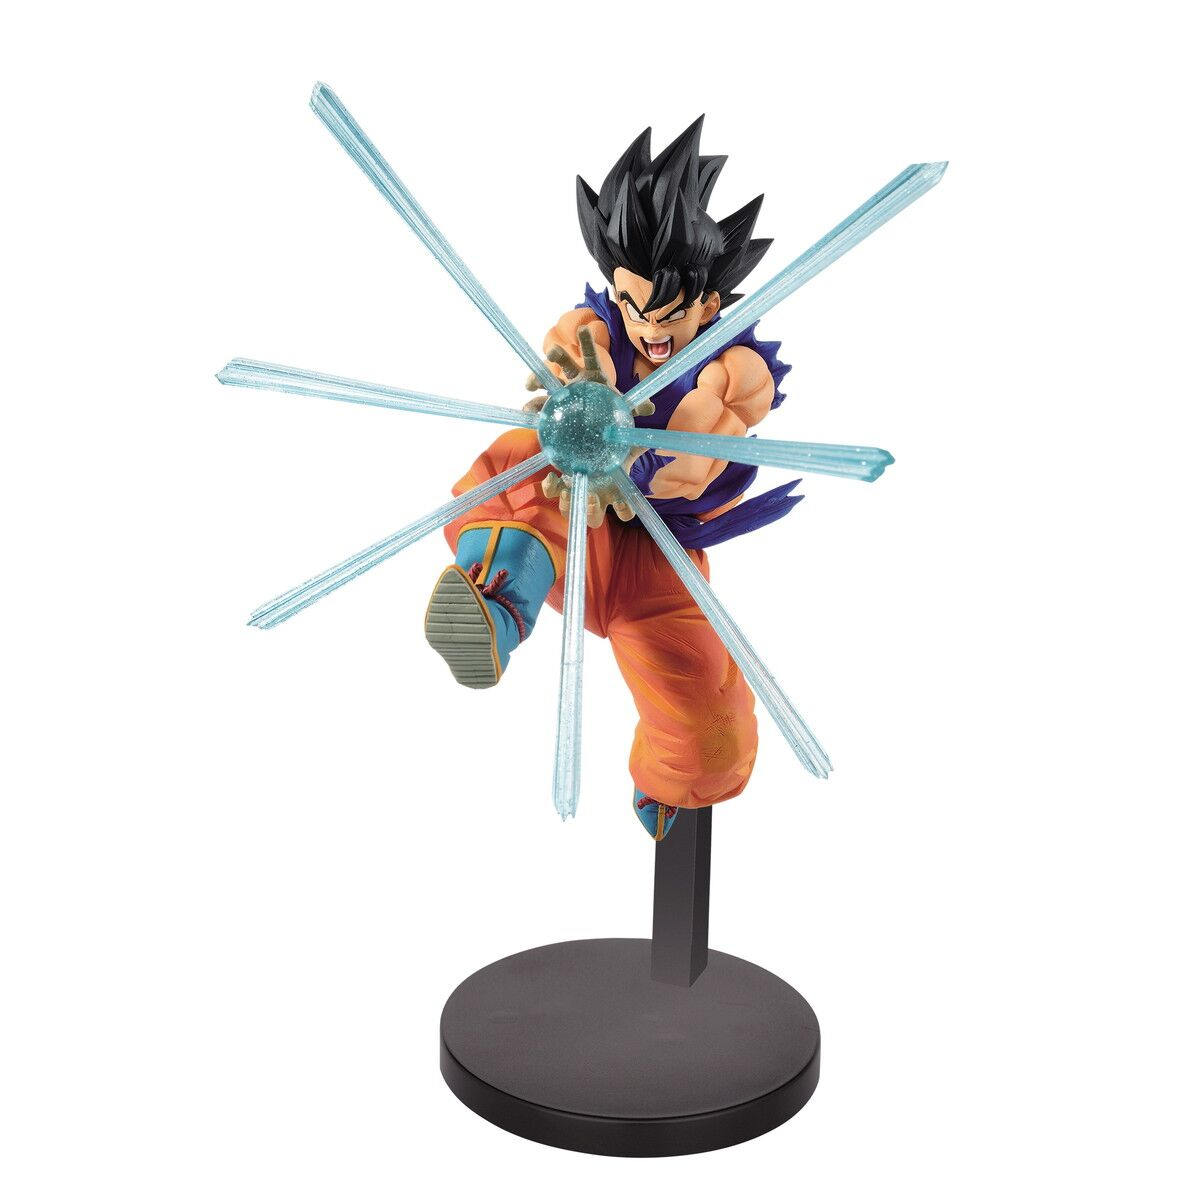 Goku Dragon Ball Z Gxmateria Figure